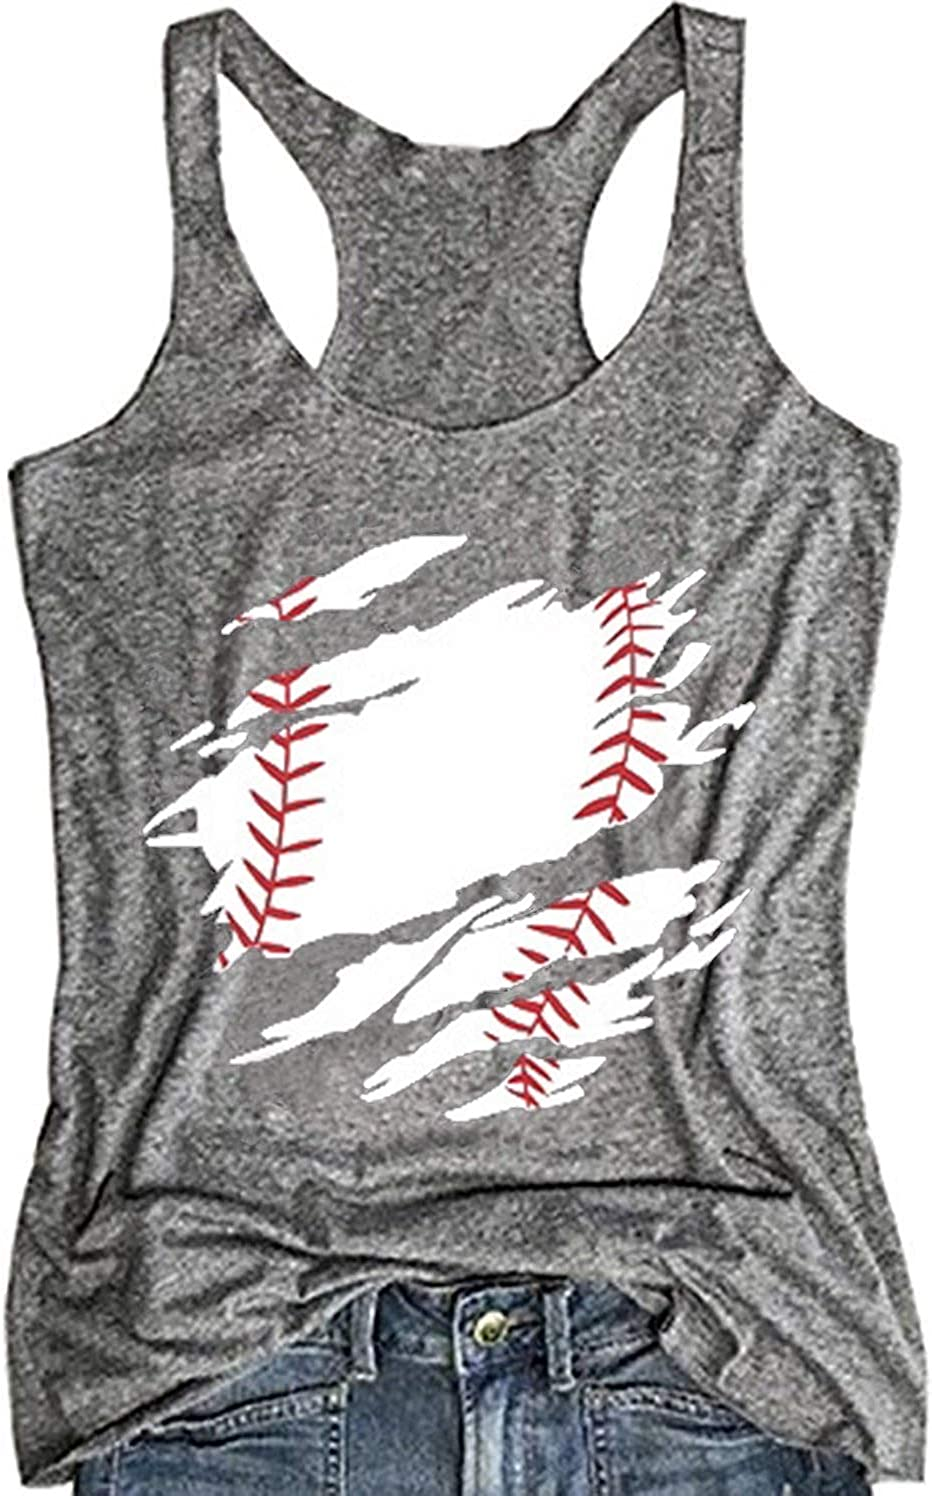 Retro athletic baseball tee Graphic Print Casual Fashion Top